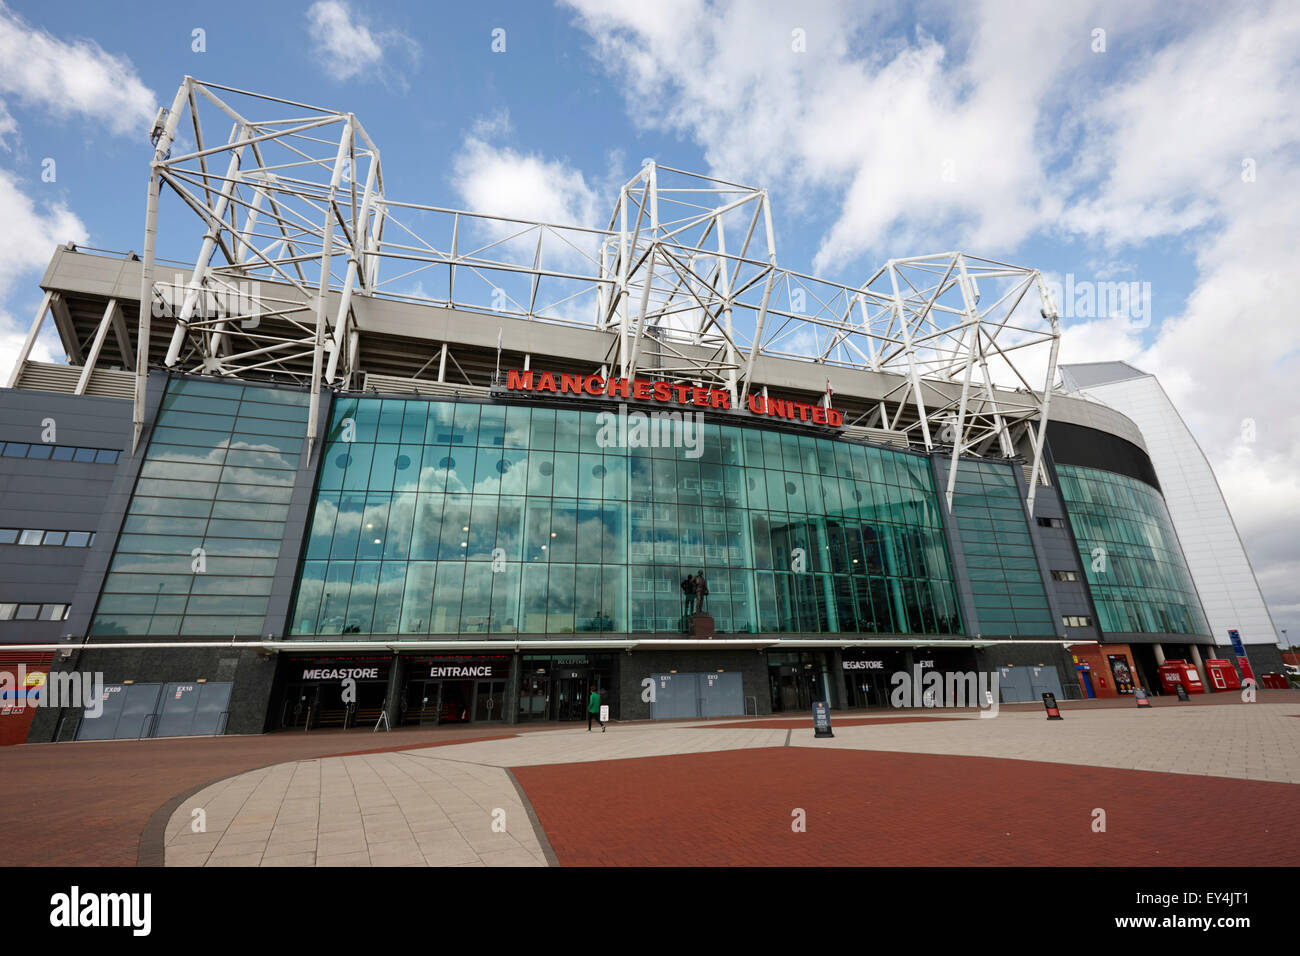 Manchester united old trafford stadium uk - Stock Image